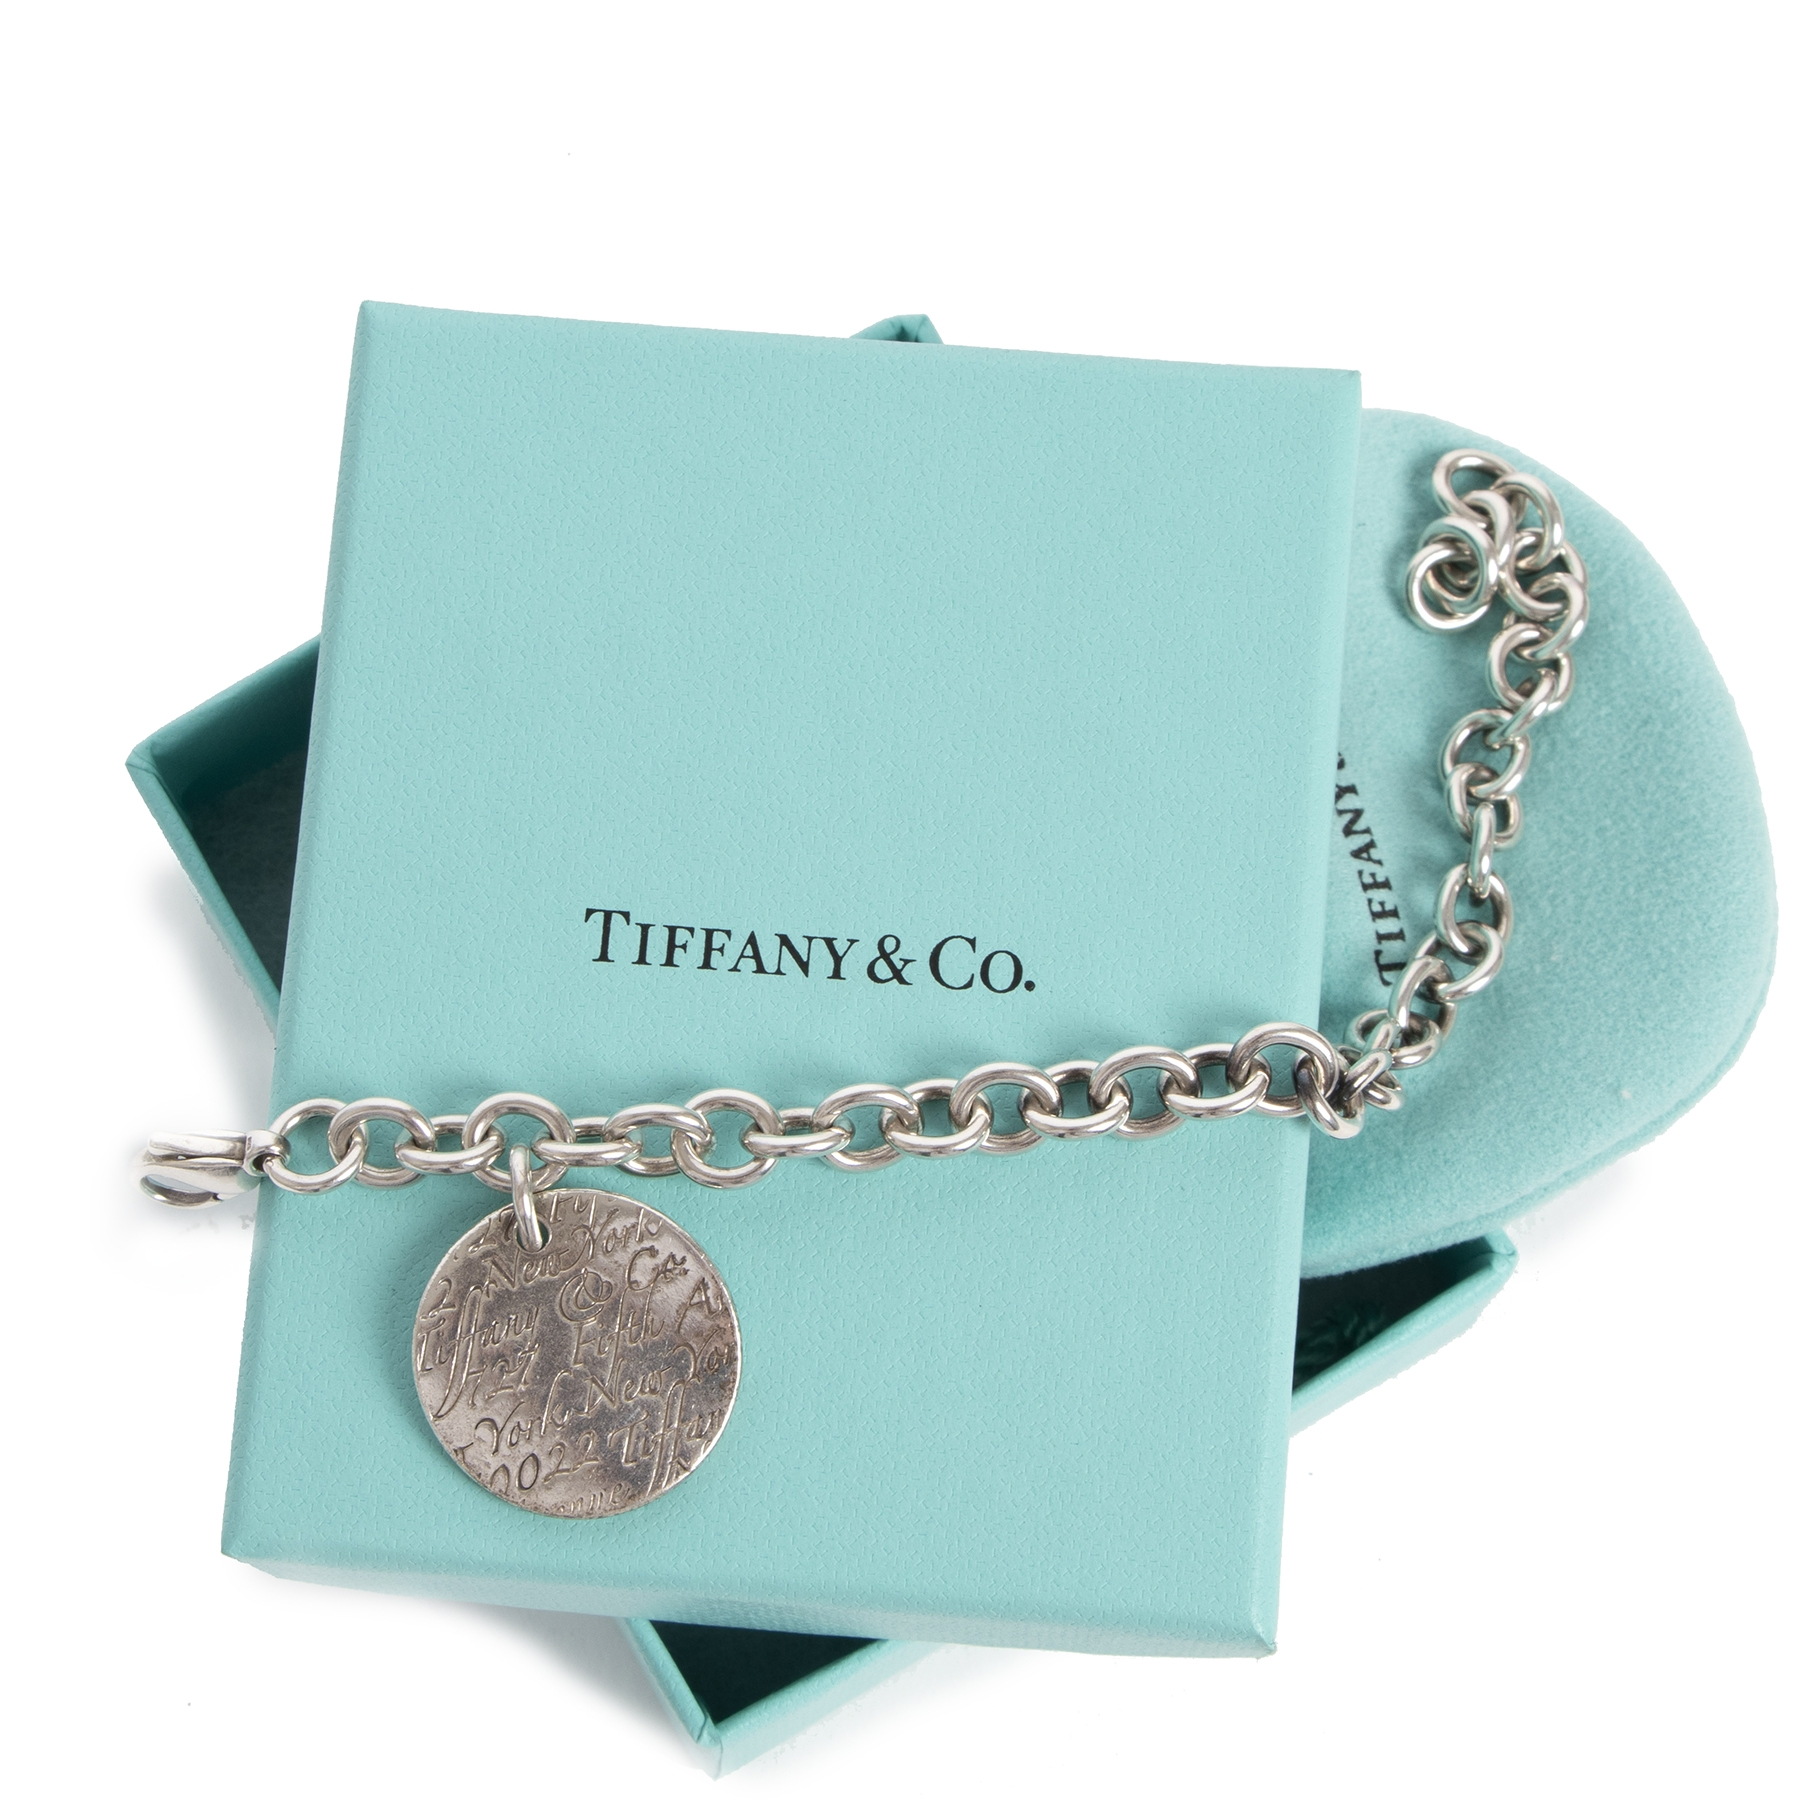 Authentic secondhand Tiffany & Co Silver Notes New York Fifth Ave Round Charm Bracelet designer accessories jewelry designer brands luxury vintage webshop